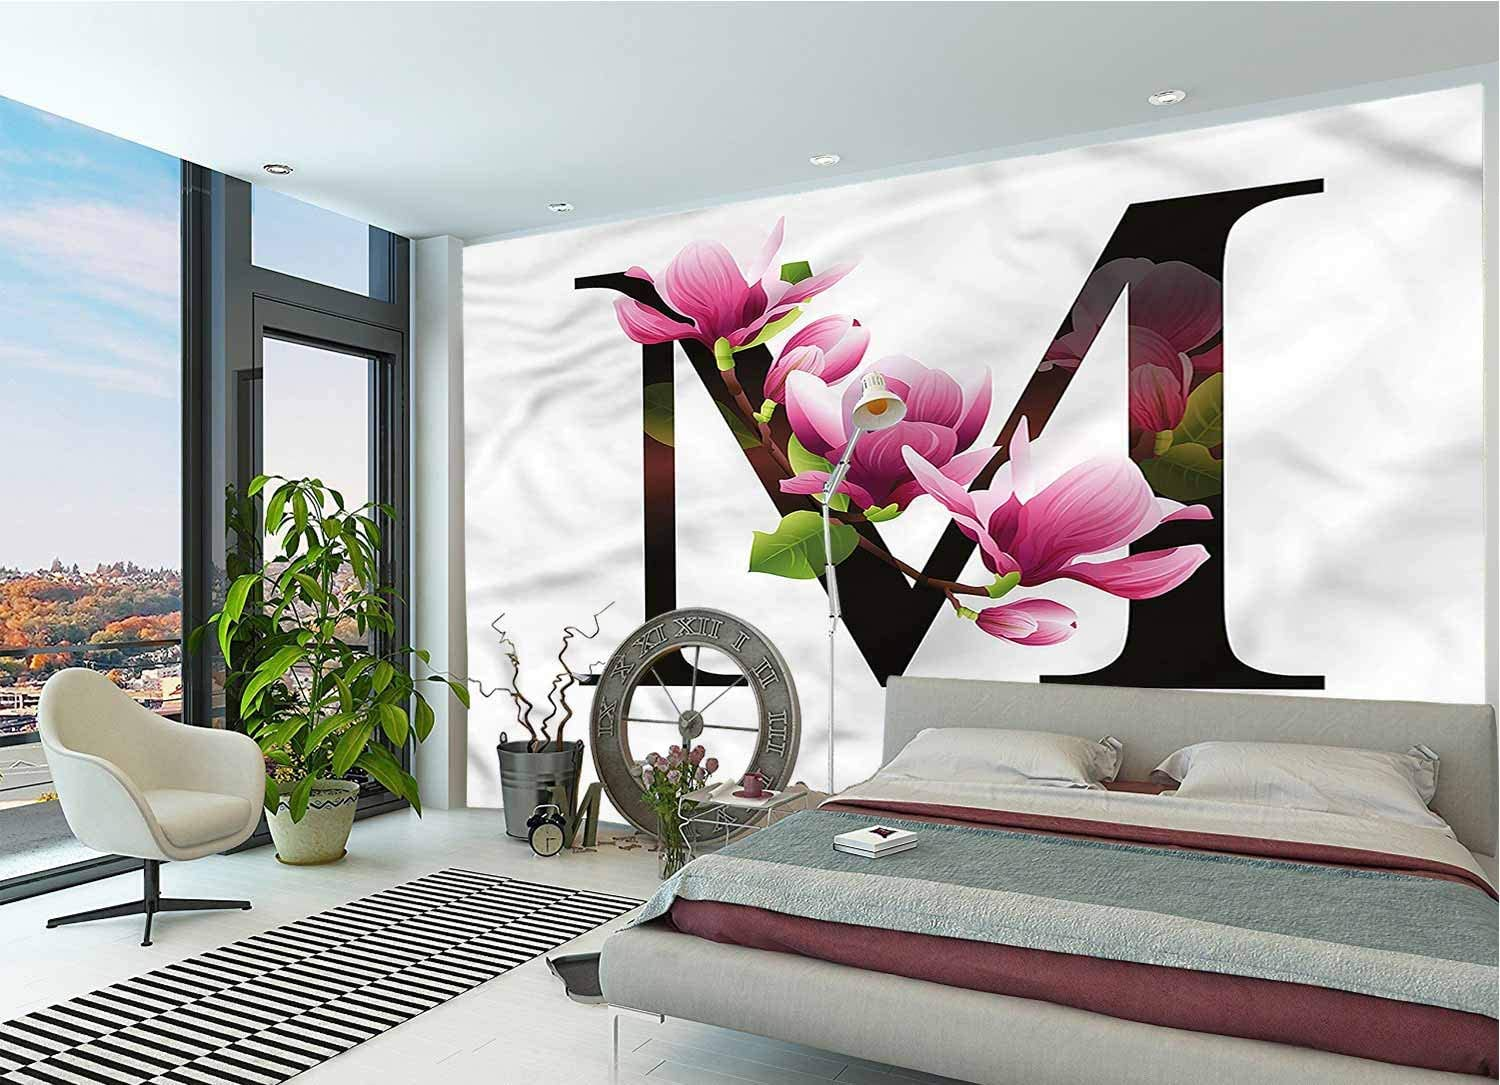 Amazon Com Letter M Wall Mural Decal M With Magnolia Floral Peel And Stick Self Adhesive Wallpaper For Livingroom Bedroom Nursery School Family Wall Decals 78x55 Inch Home Kitchen